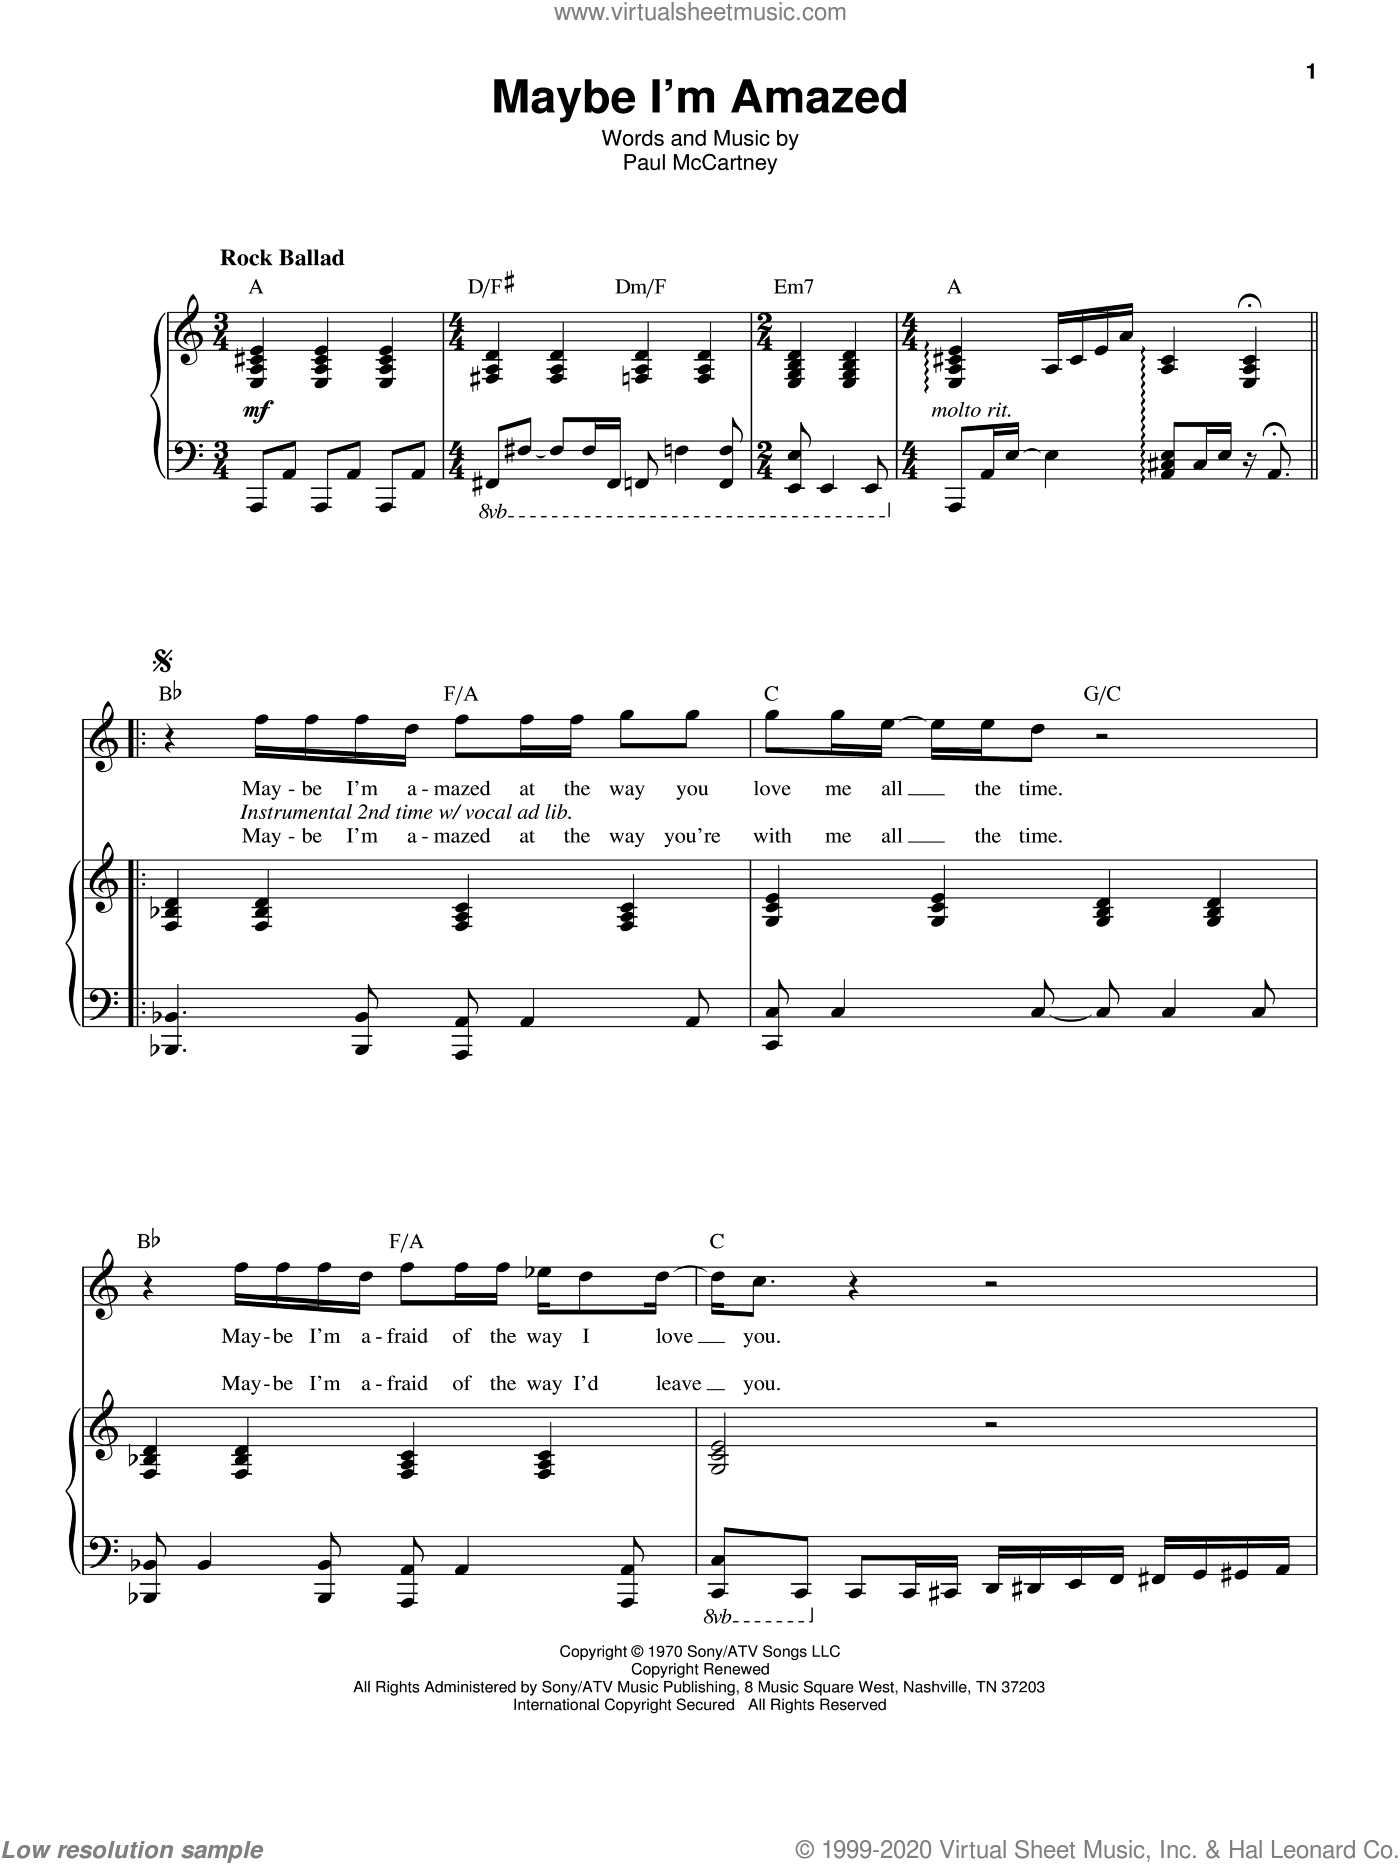 Maybe I'm Amazed sheet music for voice and piano by Paul McCartney